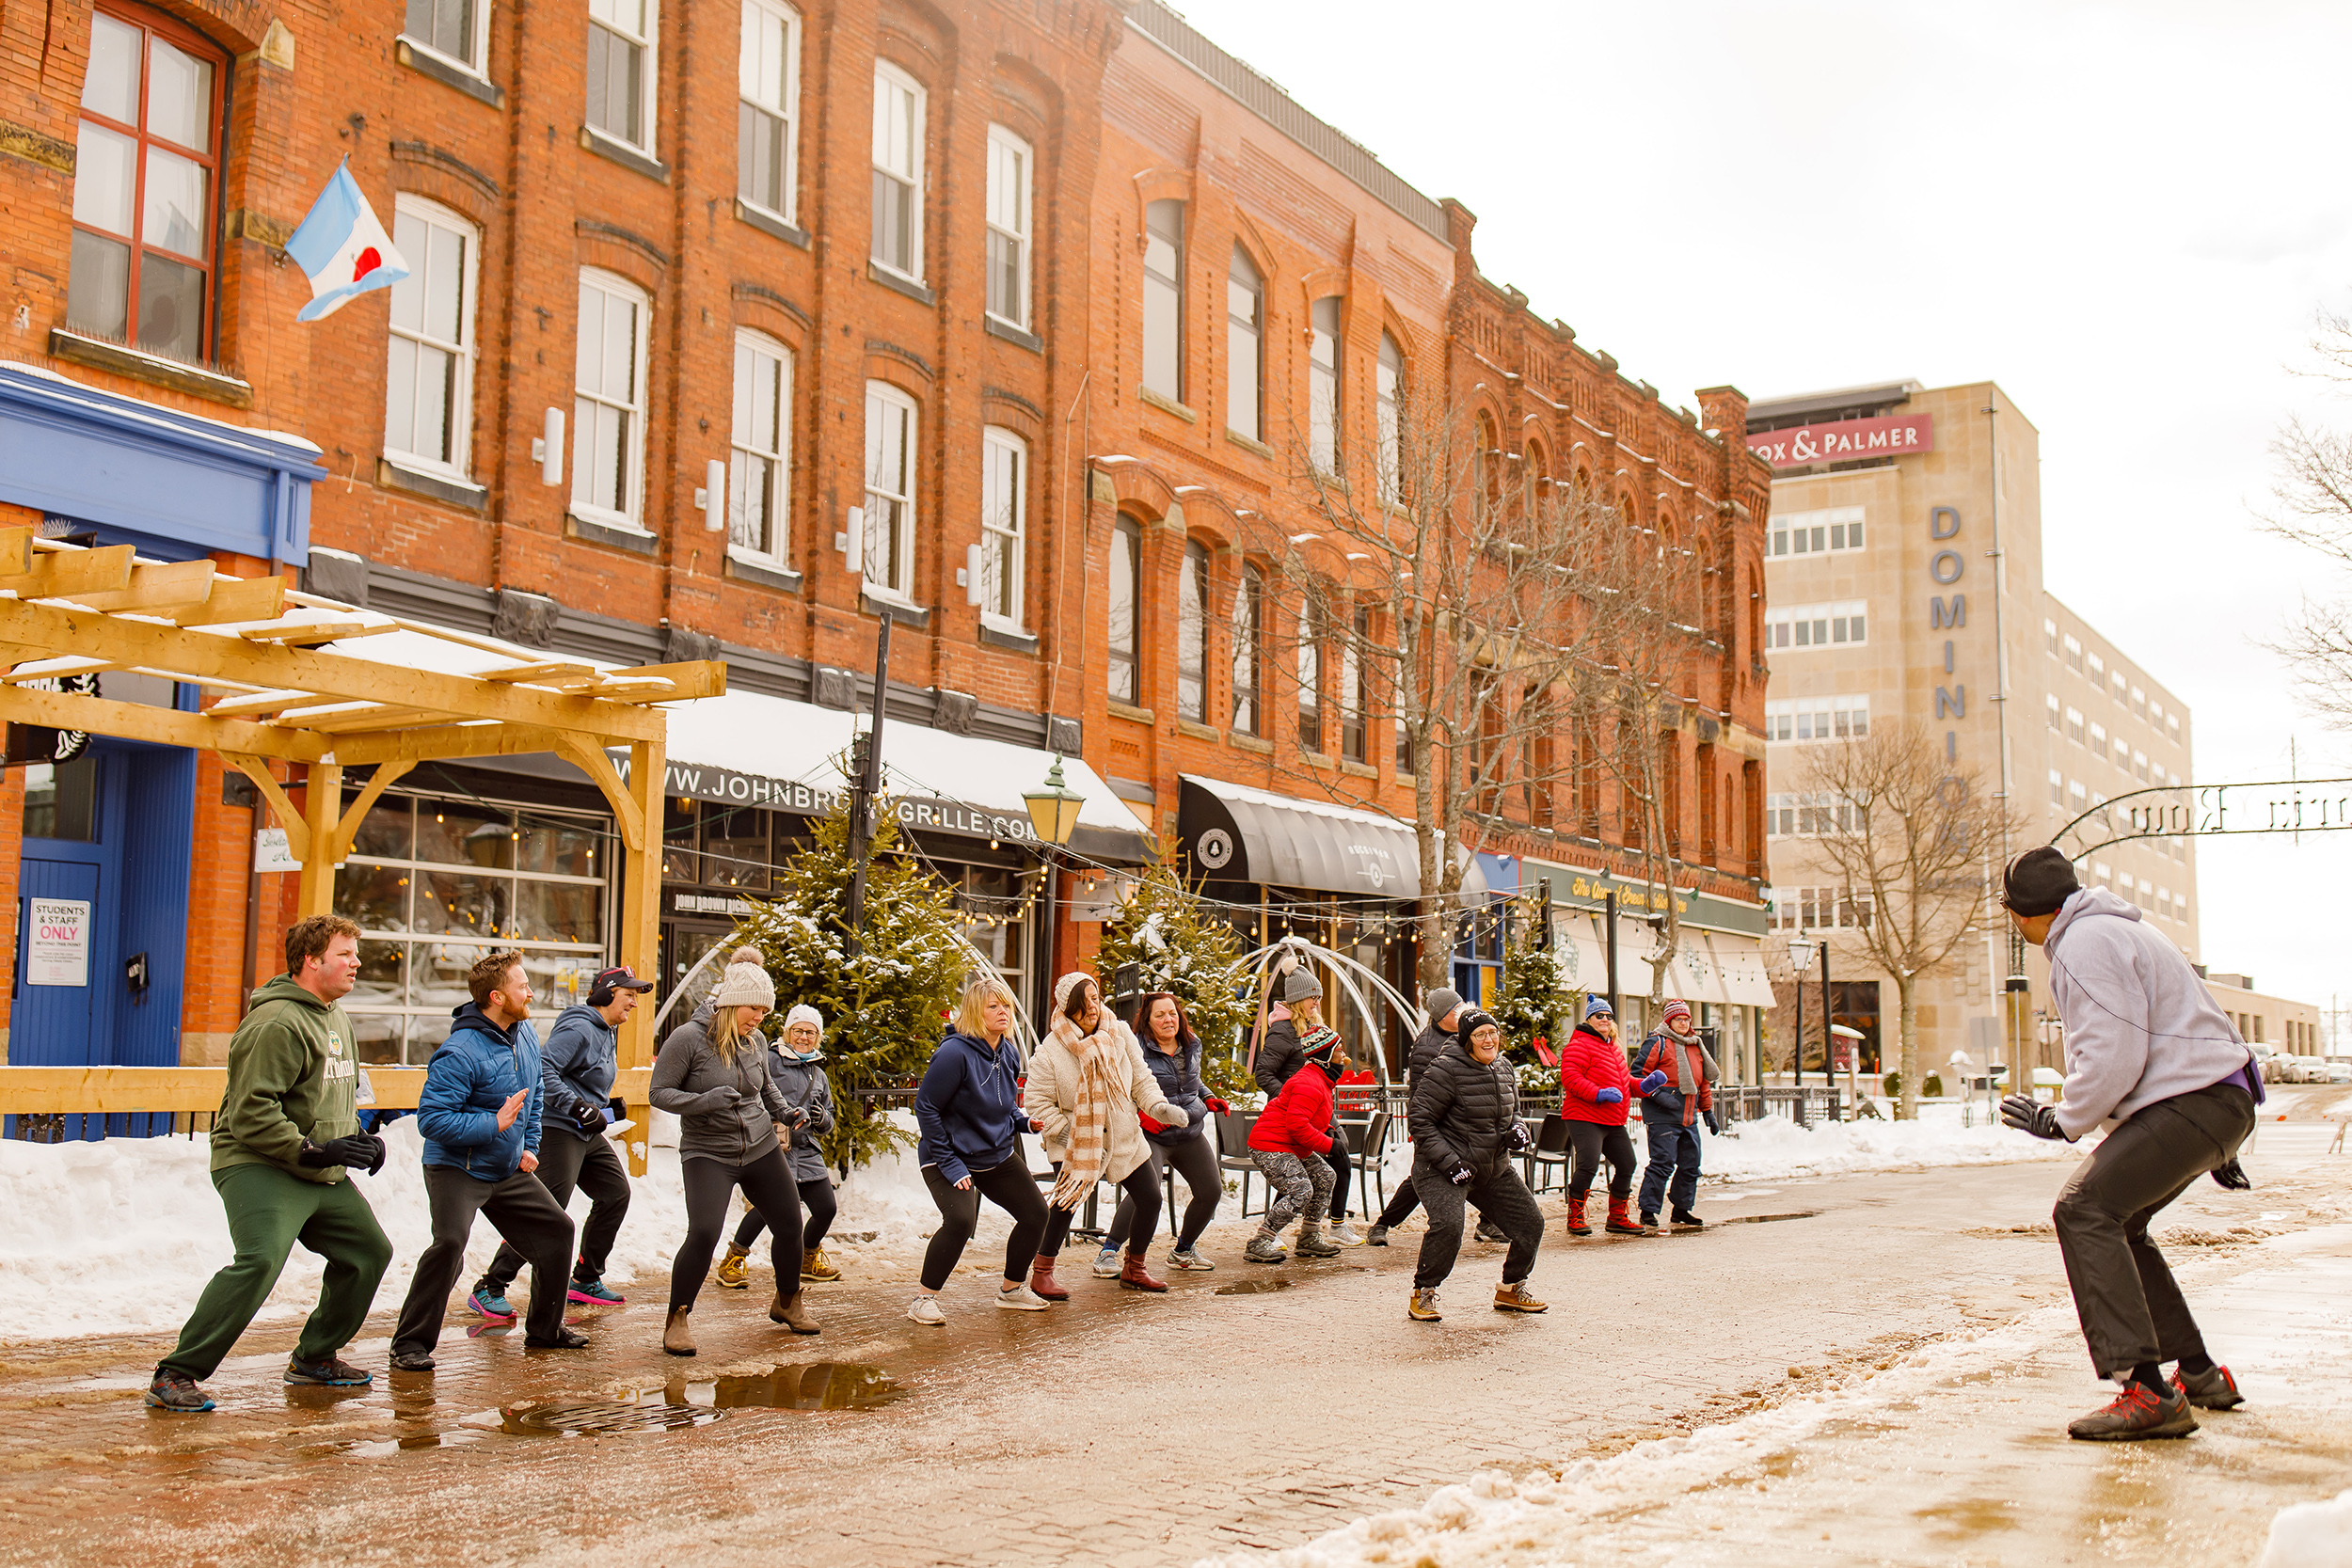 Charlottetown residents take part in a free outdoor fitness class; the city scored well in the community engagement category of our ranking (Courtesy of DiscoverCharlottetown.com)